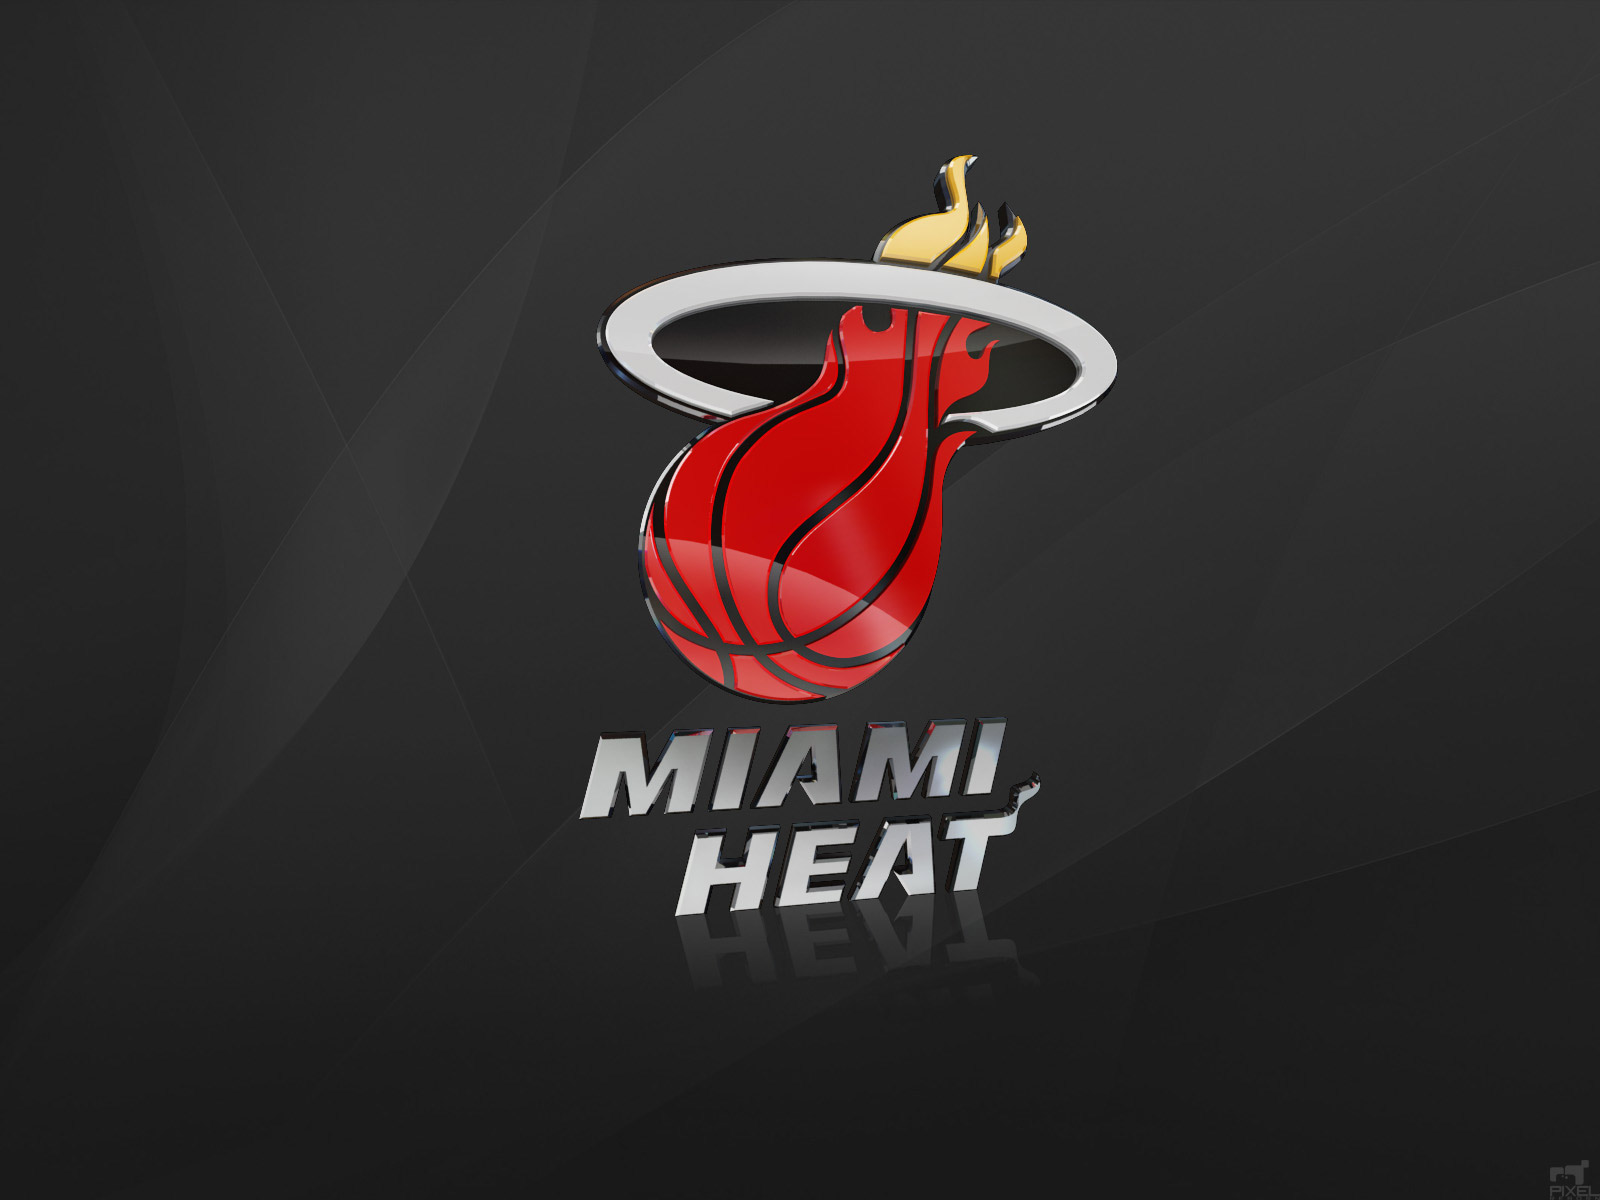 Miami Heat Wallpaper Awesome Art 1080p 202 Backgrounds